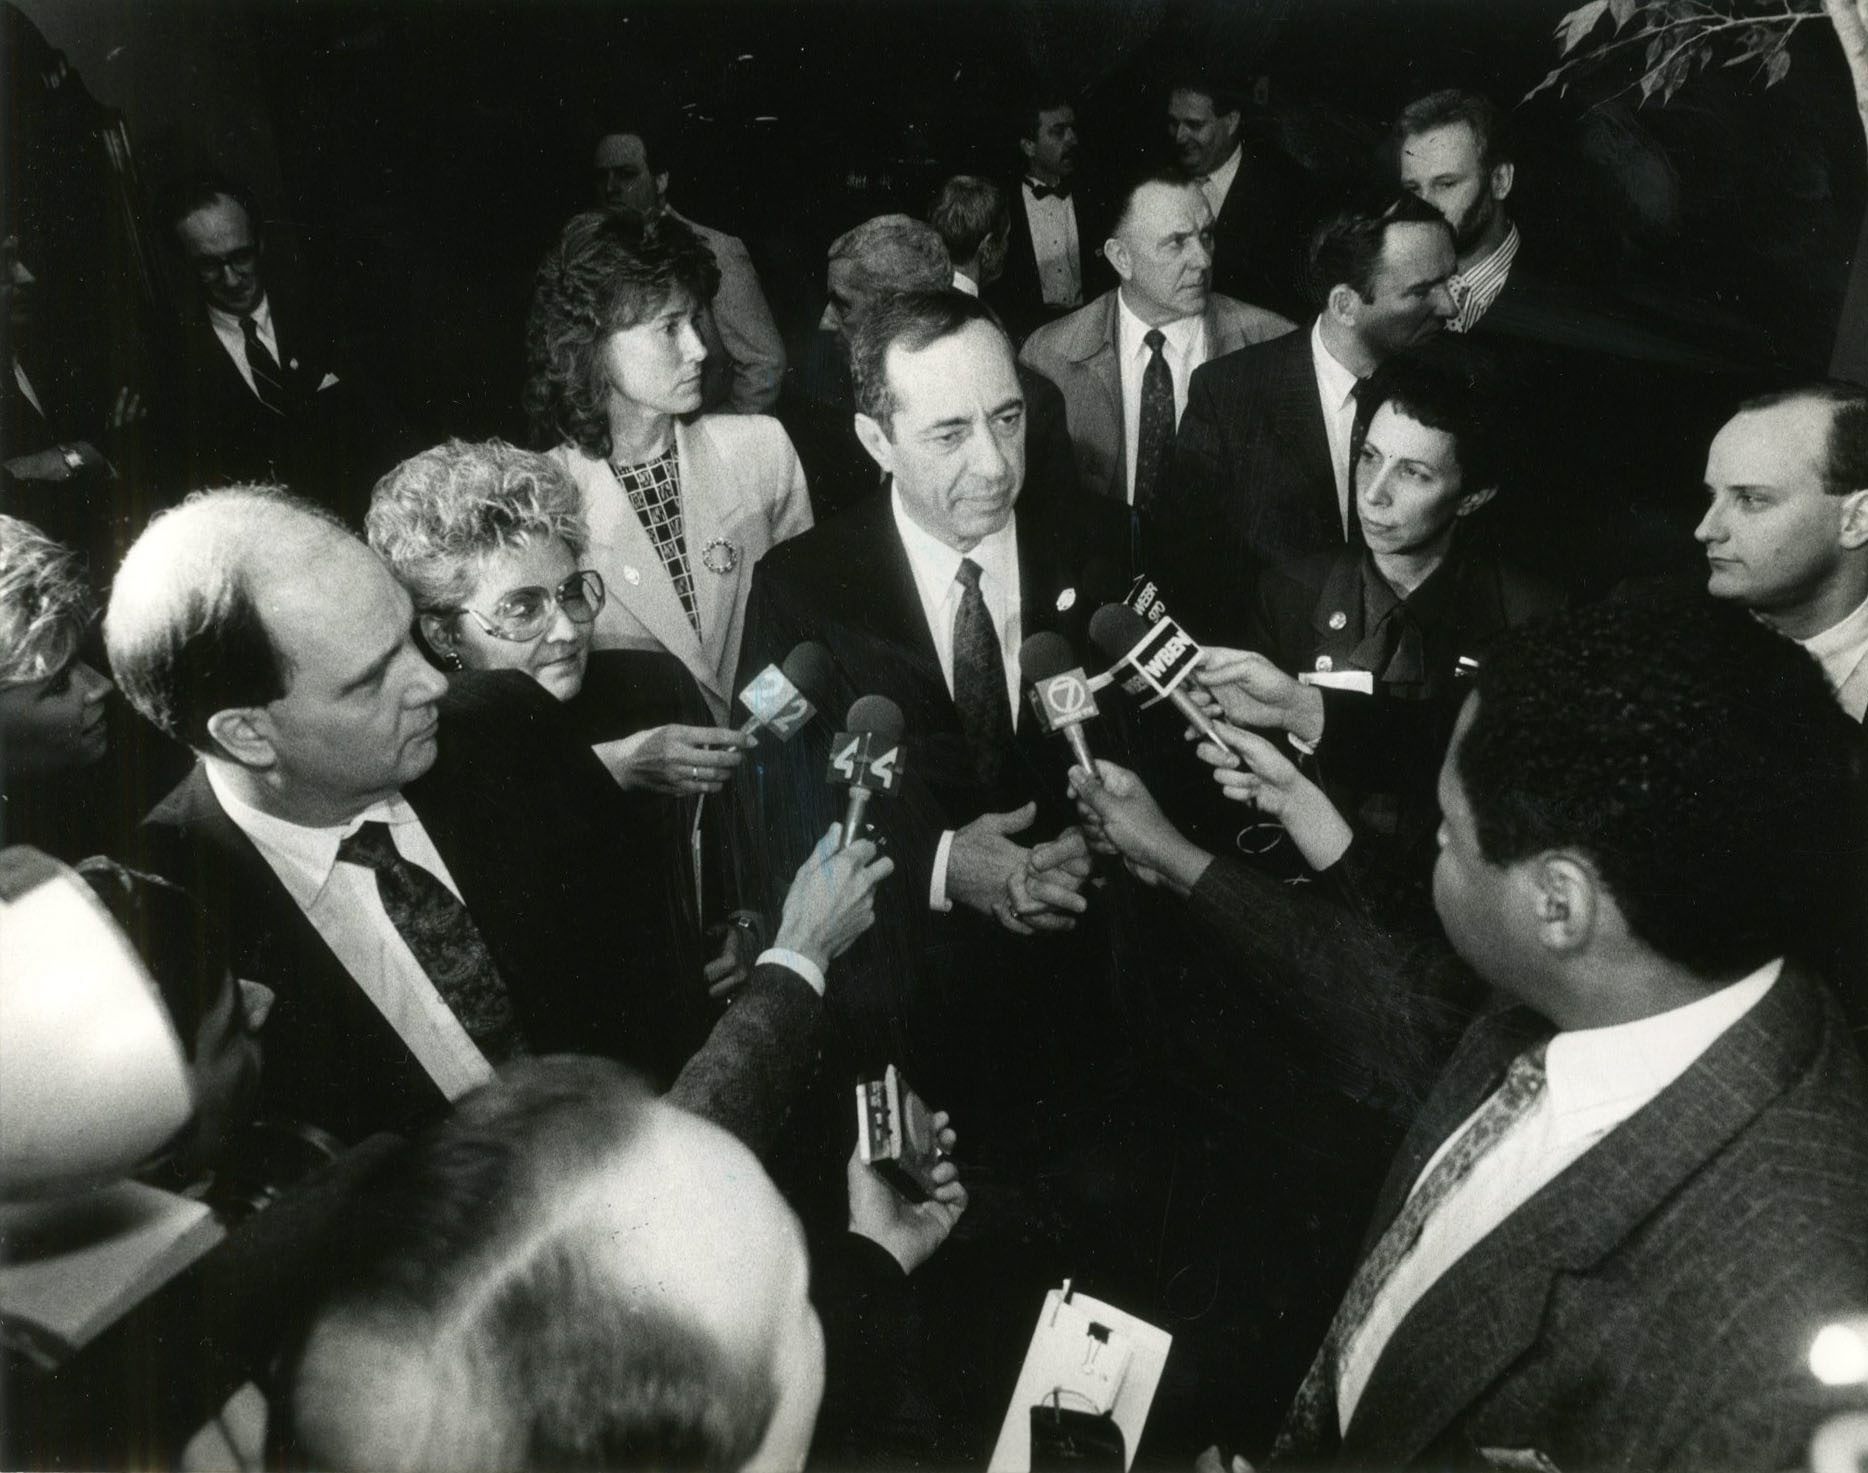 The late Mario Cuomo, when he served as governor of New York: He stepped away from a chance to run for president. (Buffalo News/File art)